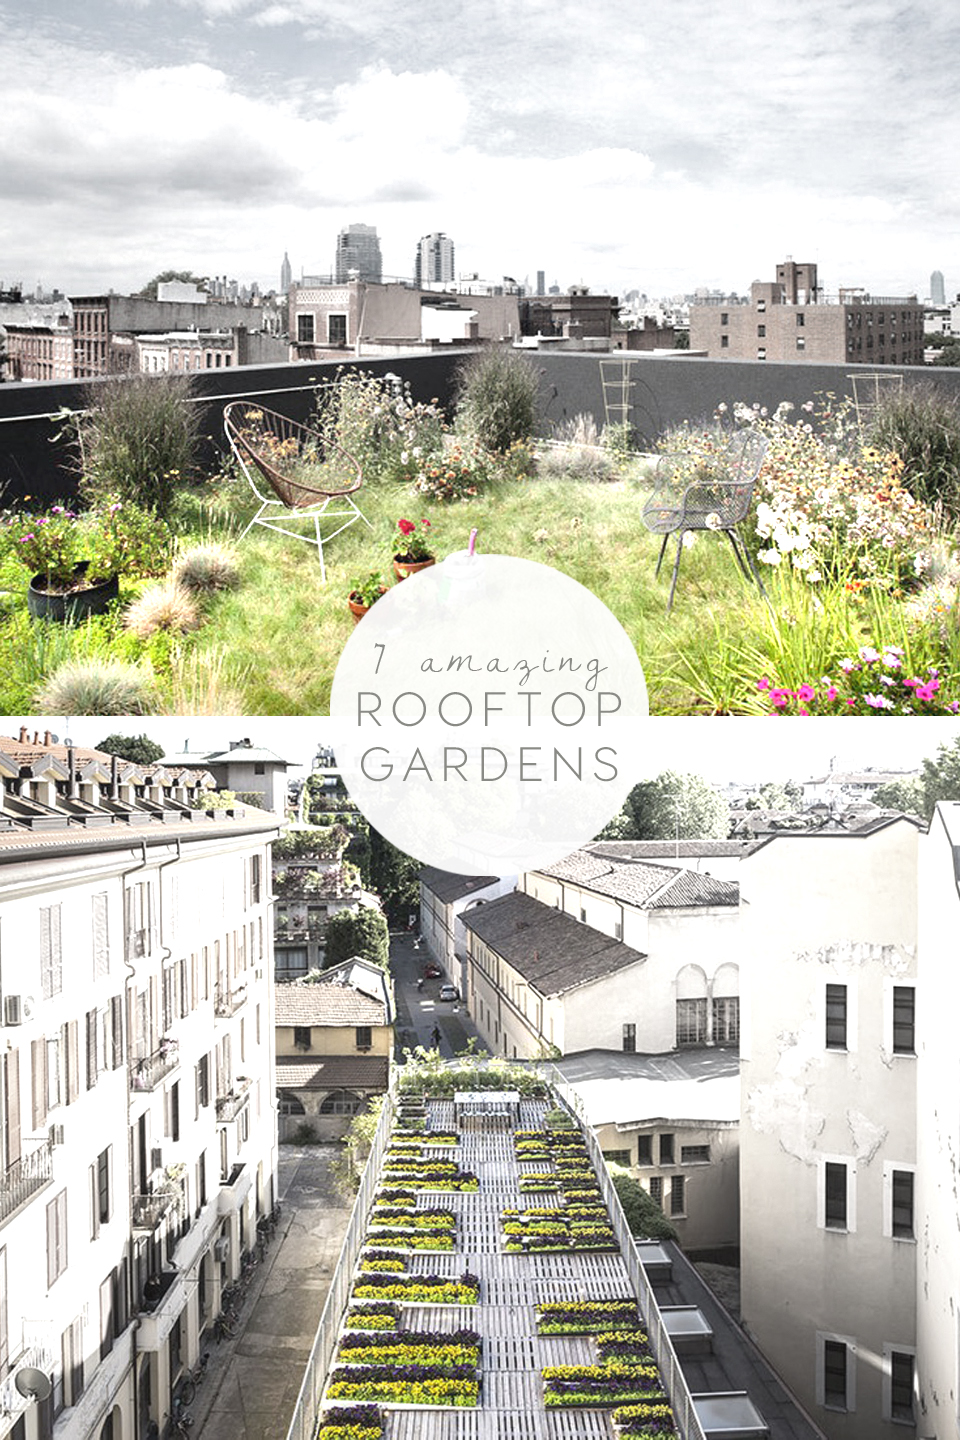 rooftop gardens, garden design, best rooftops, italianbark interior design blog